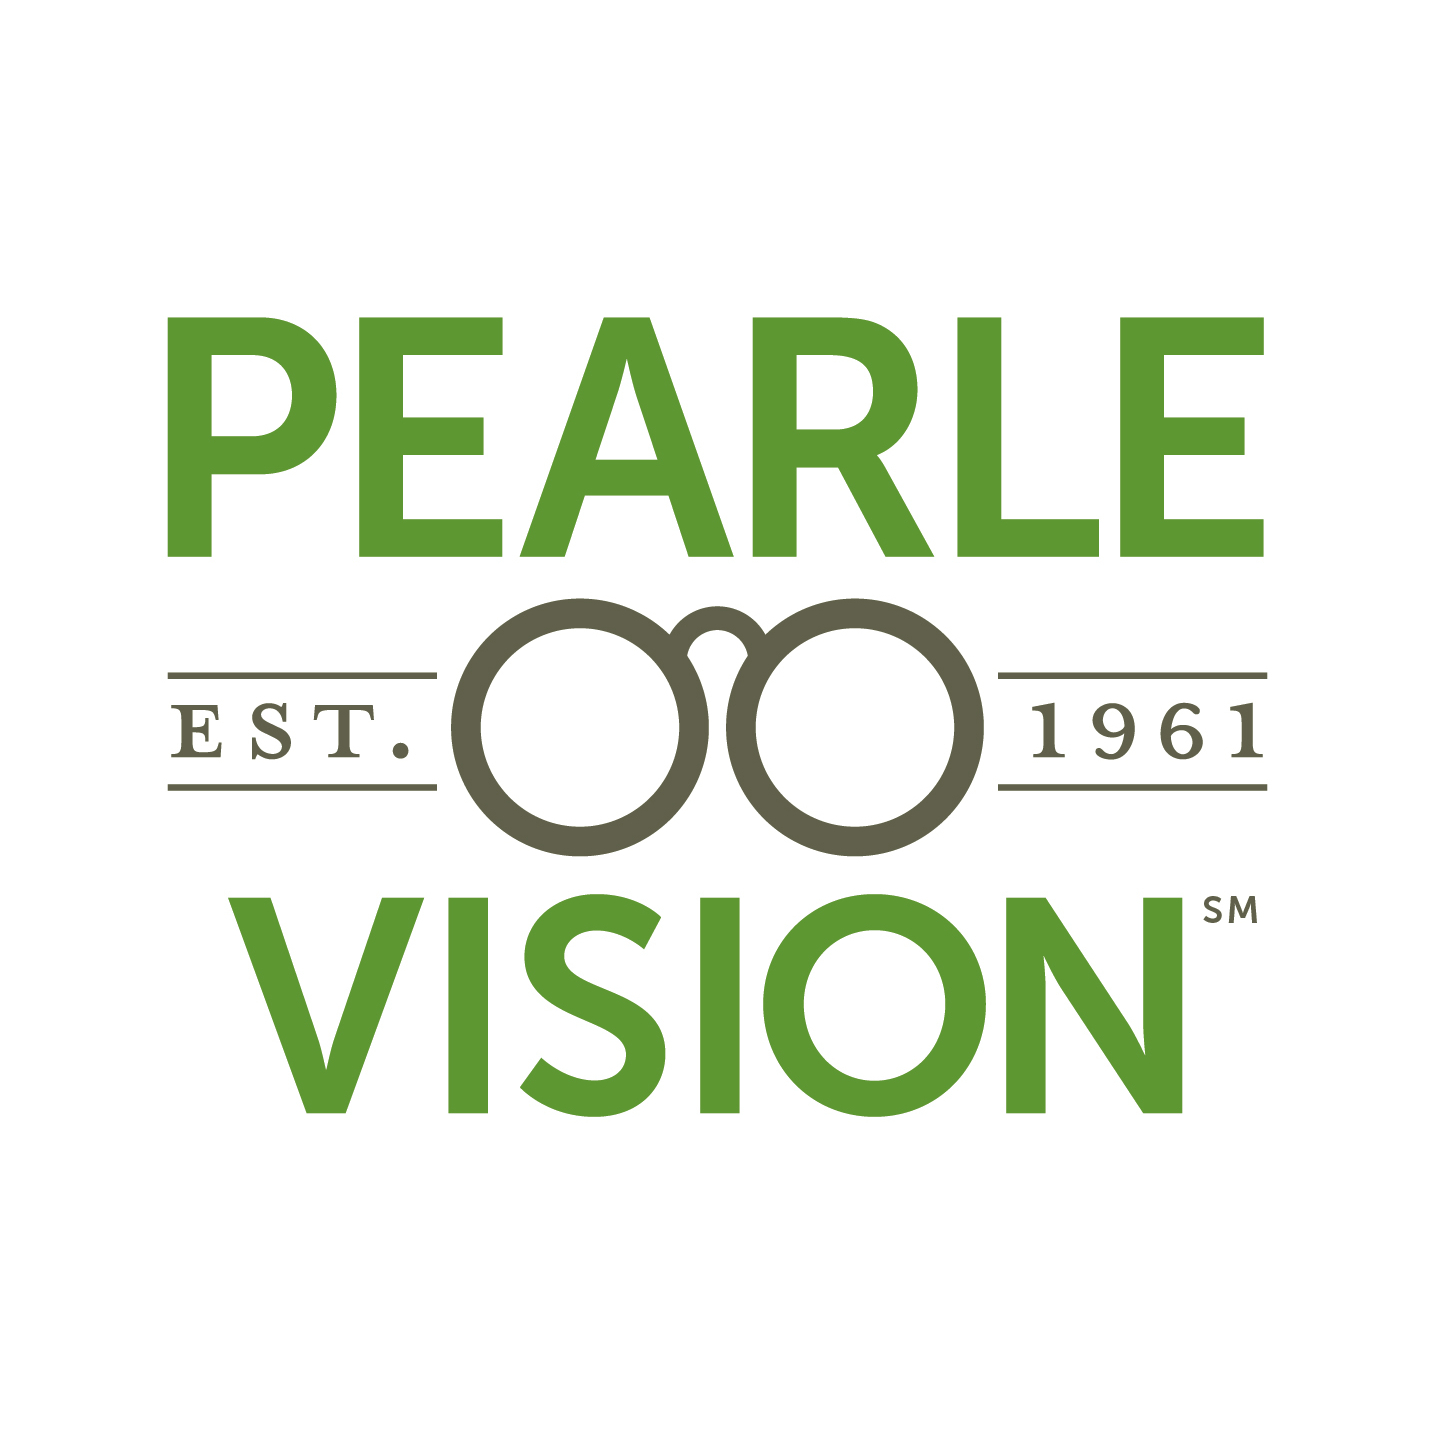 Pearle Vision - Closed Location